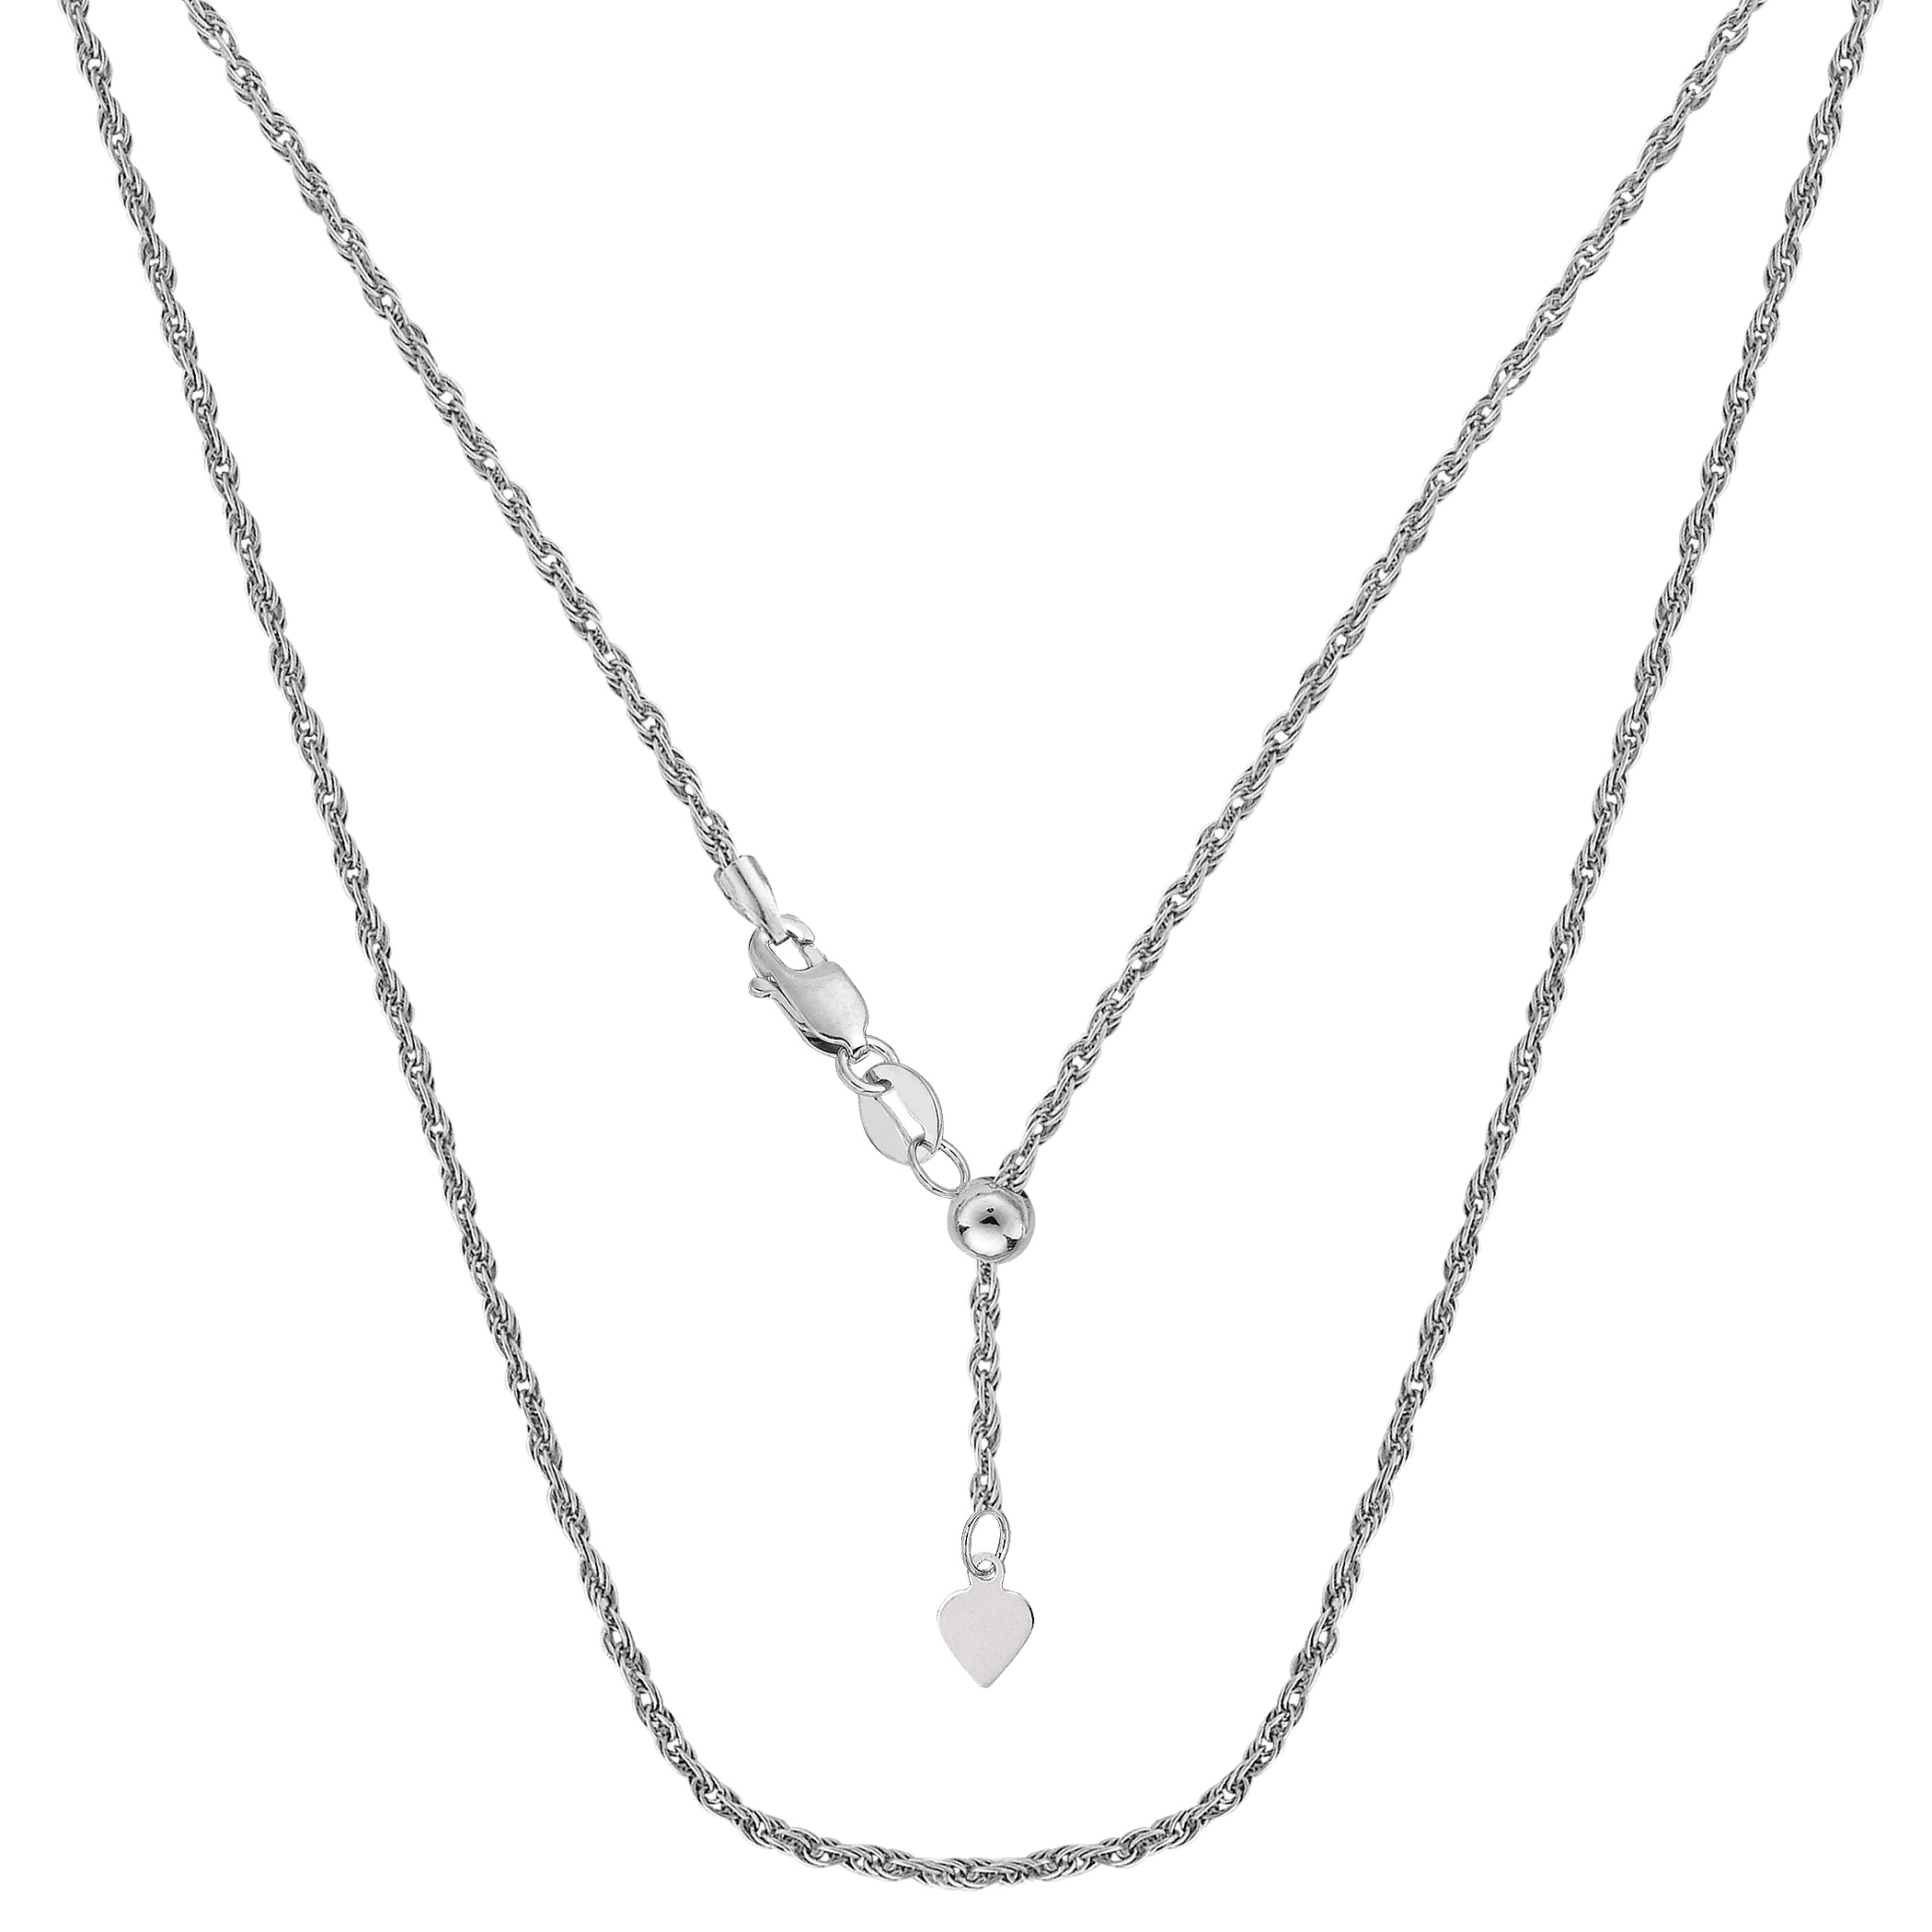 Sterling Silver Rhodium Plated Sliding Adjustable Rope Chain Necklace, 22  Using it by itself or combining it with charms and pendants, this 22 inch long adjustable rope style chain is a perfect addition to any jewelry fashionista collection.